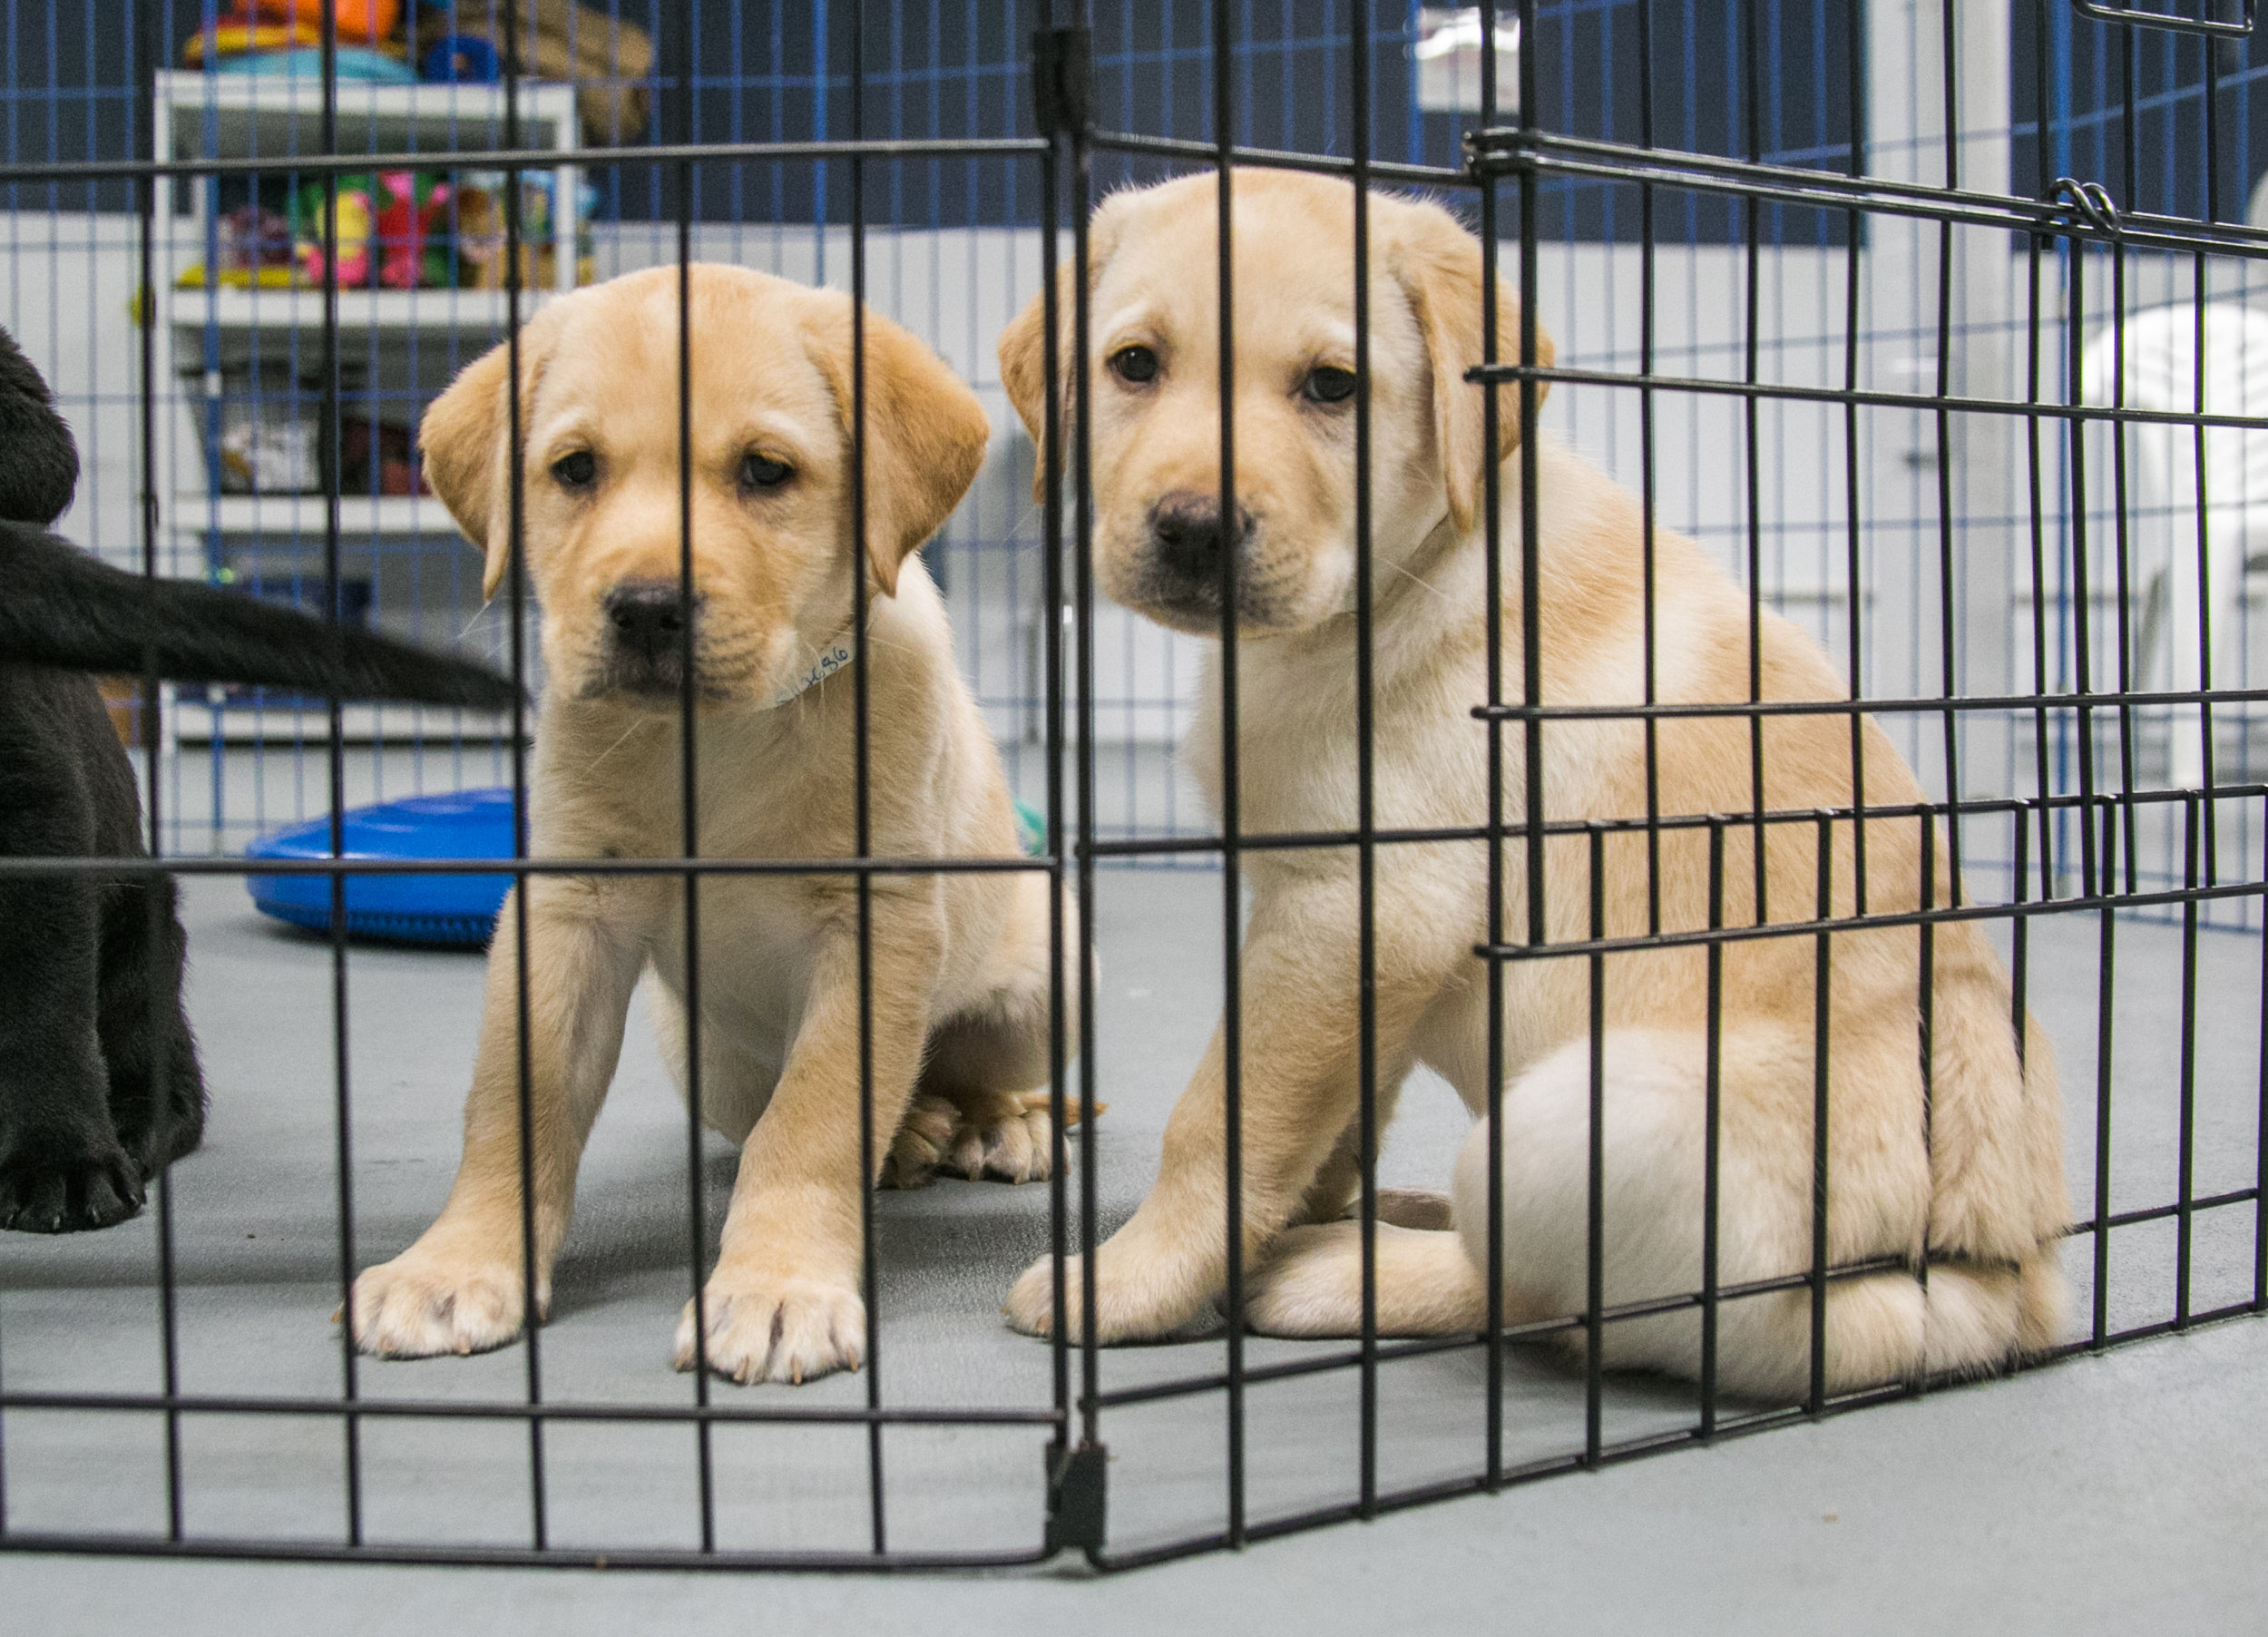 6-week old puppies being cared for at the Canine Partners for Life Headquarters in Cochranville, PA. The dogs will stay here for another 2-3 weeks before being transferred to a prison in Pennsylvania or Maryland.